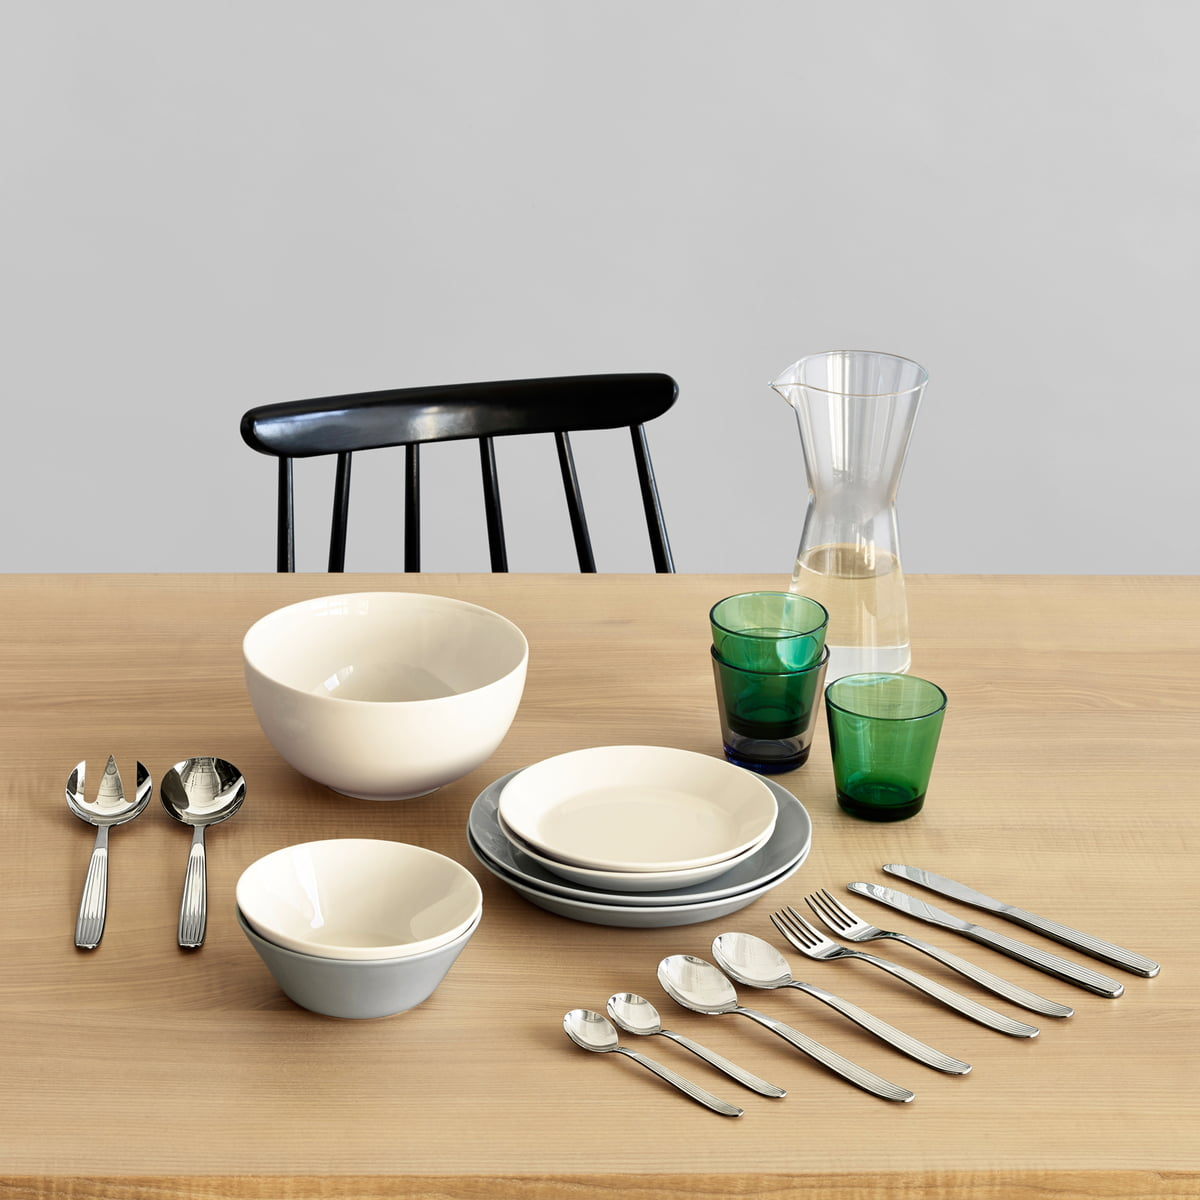 teema starter set by iittala in our design shop - scandia serving set and table silverware by iittala